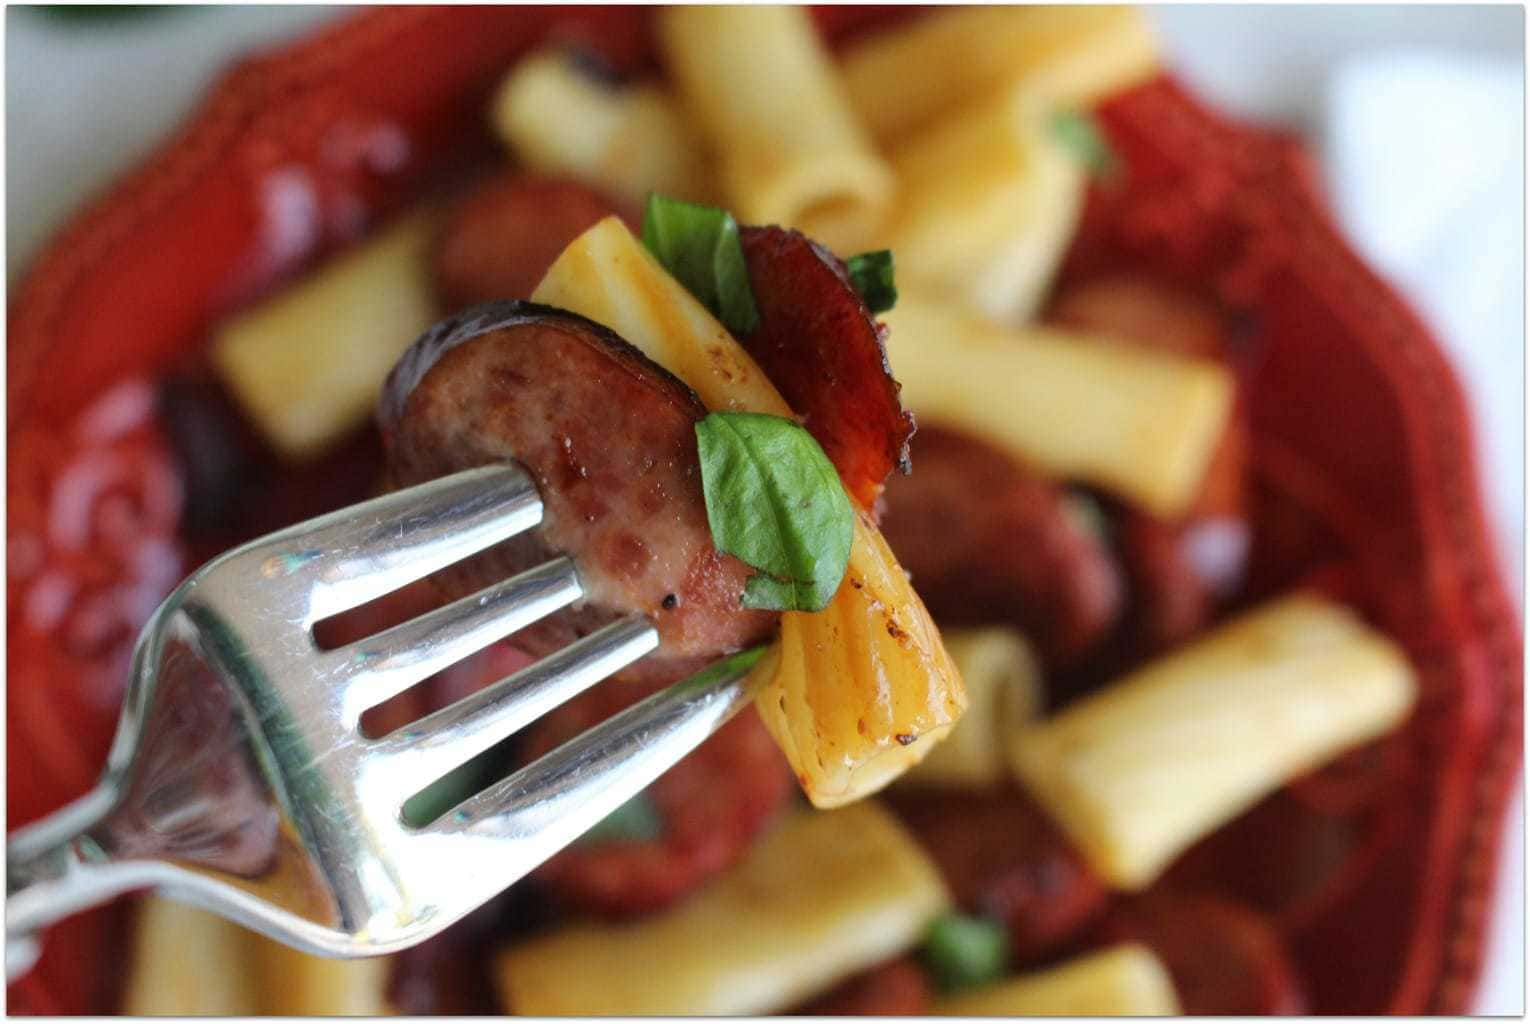 This Italian Rigatoni with smoked sausage and sundried tomato is one of the best dinner recipes I've ever made. The smokiness of the sausage paired with the sweetness of the sundried tomatoes gives this easy recipe amazing flavor, and it won't keep you in the kitchen for hours! I like easy!